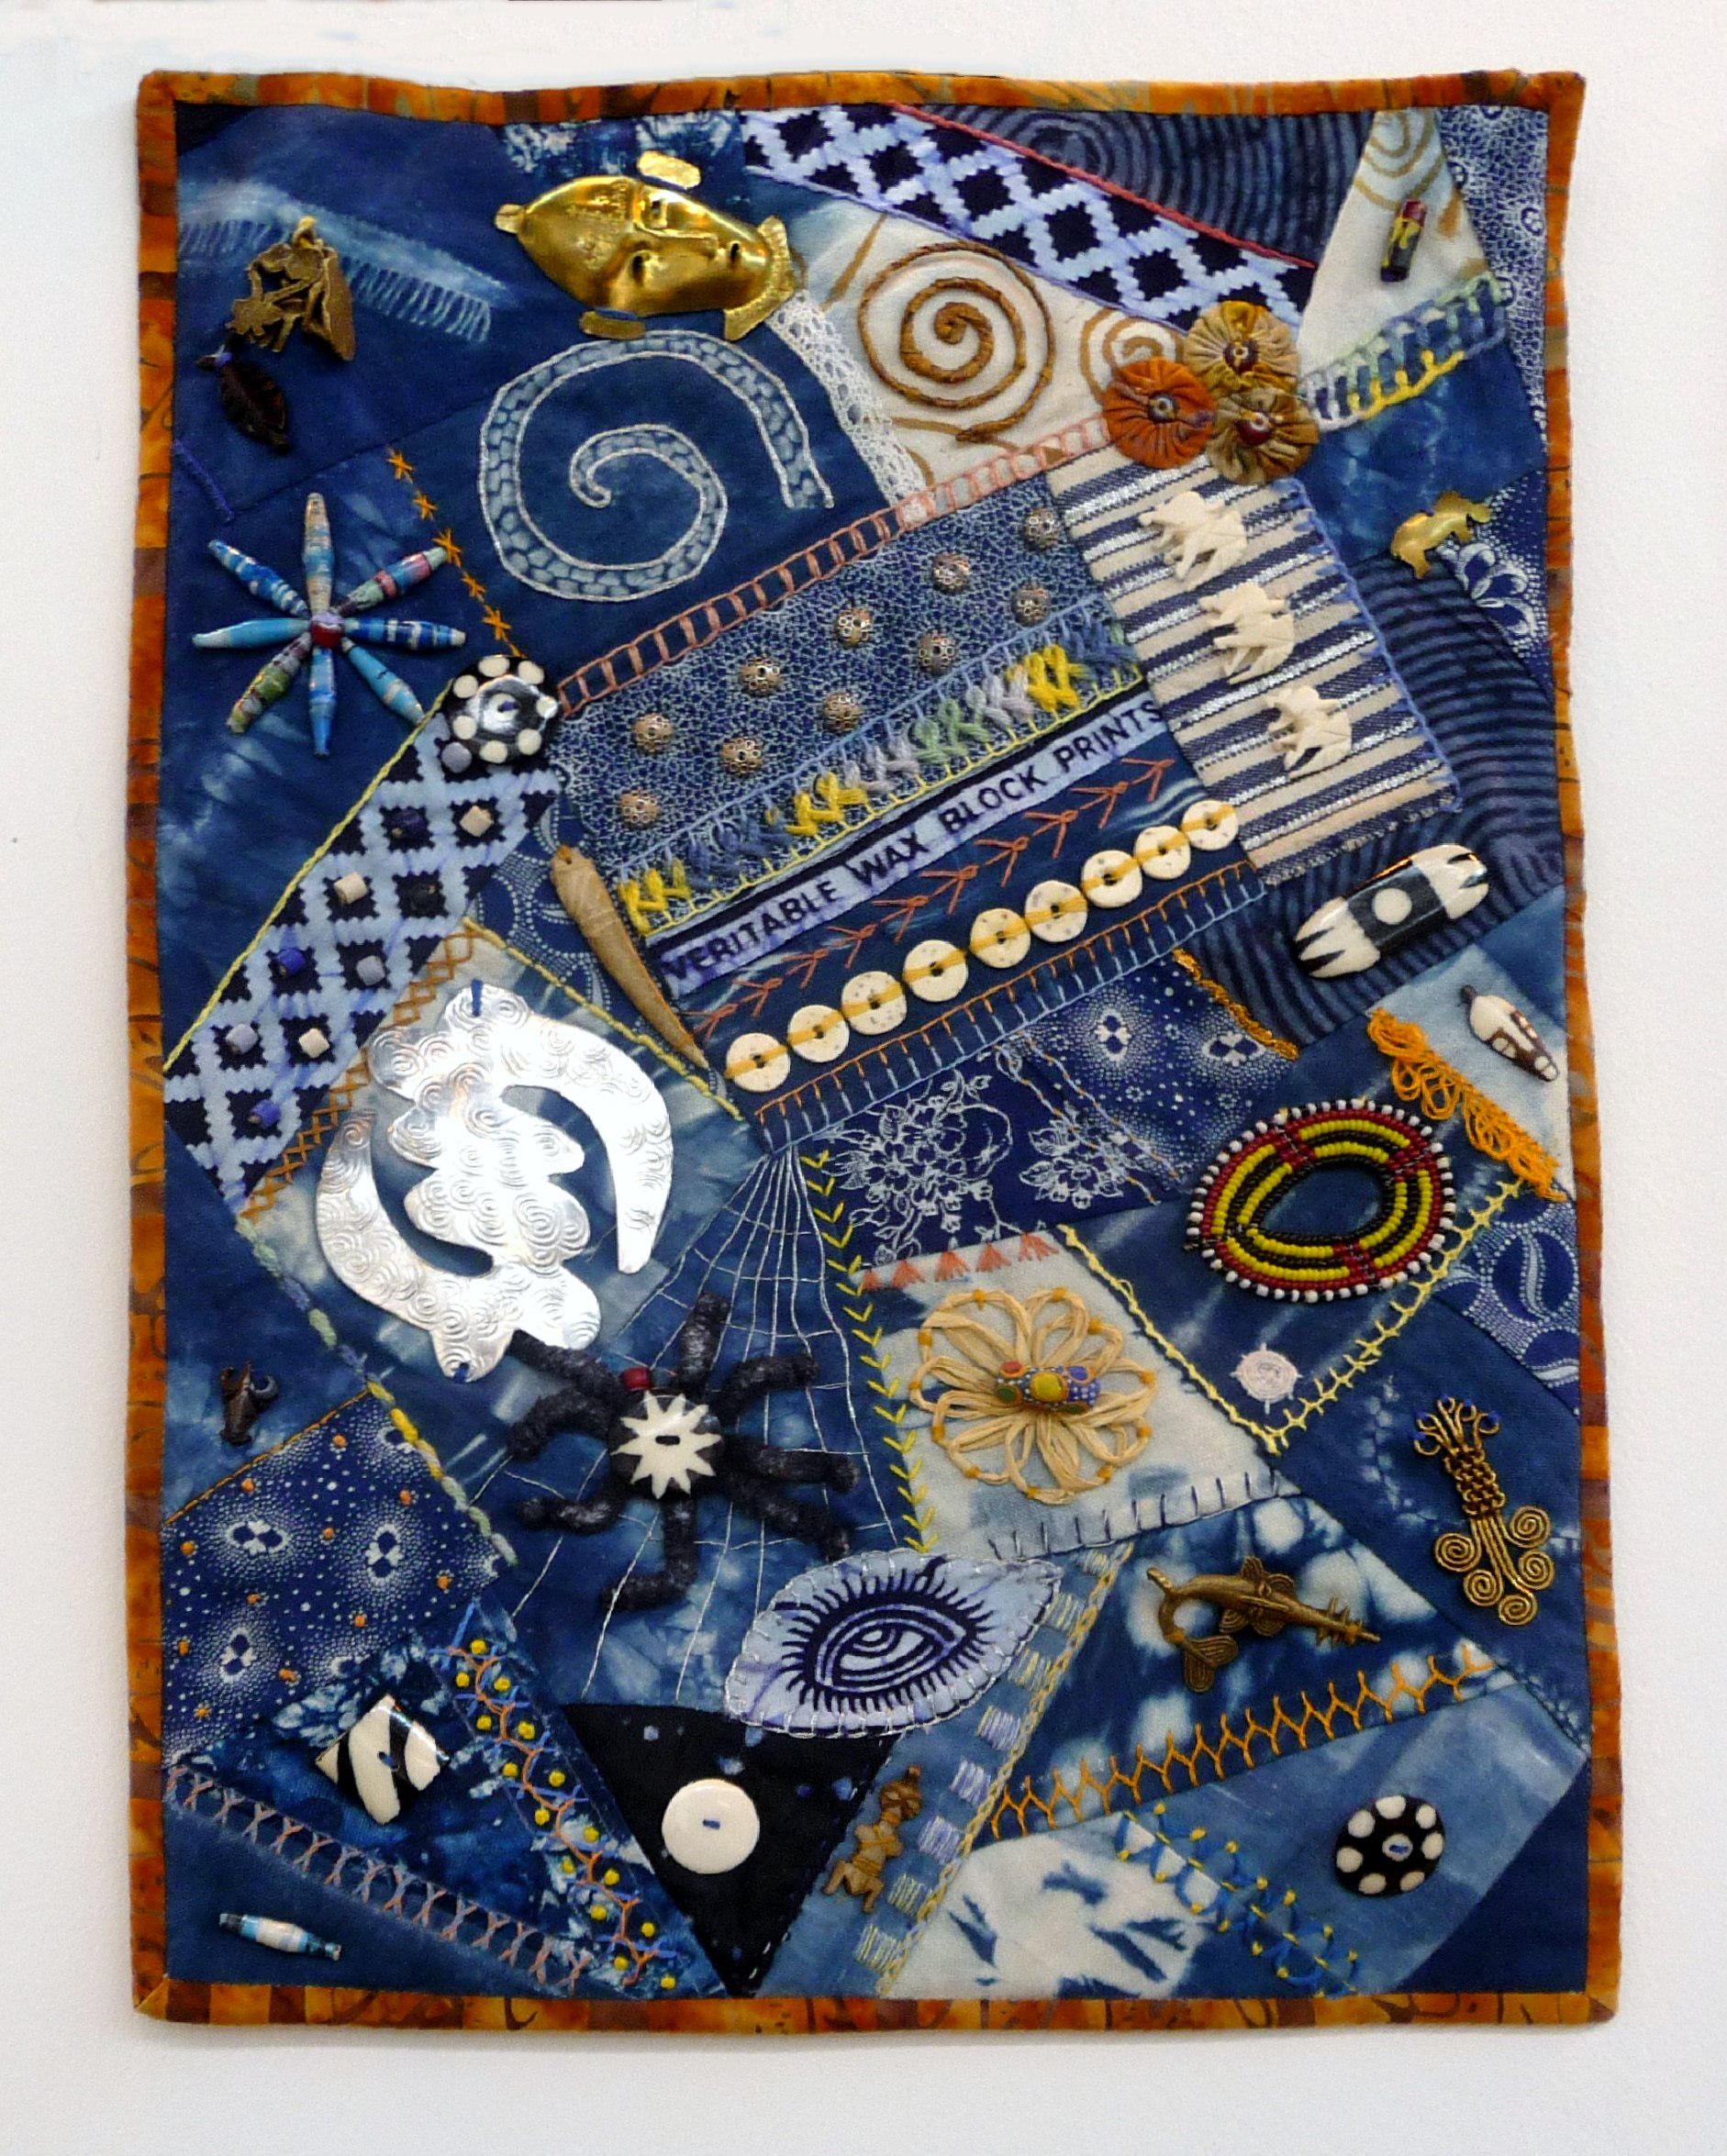 CRAZY FOR AFRICA by Gretchen Saunders Mwaura from Voyage Art Textiles